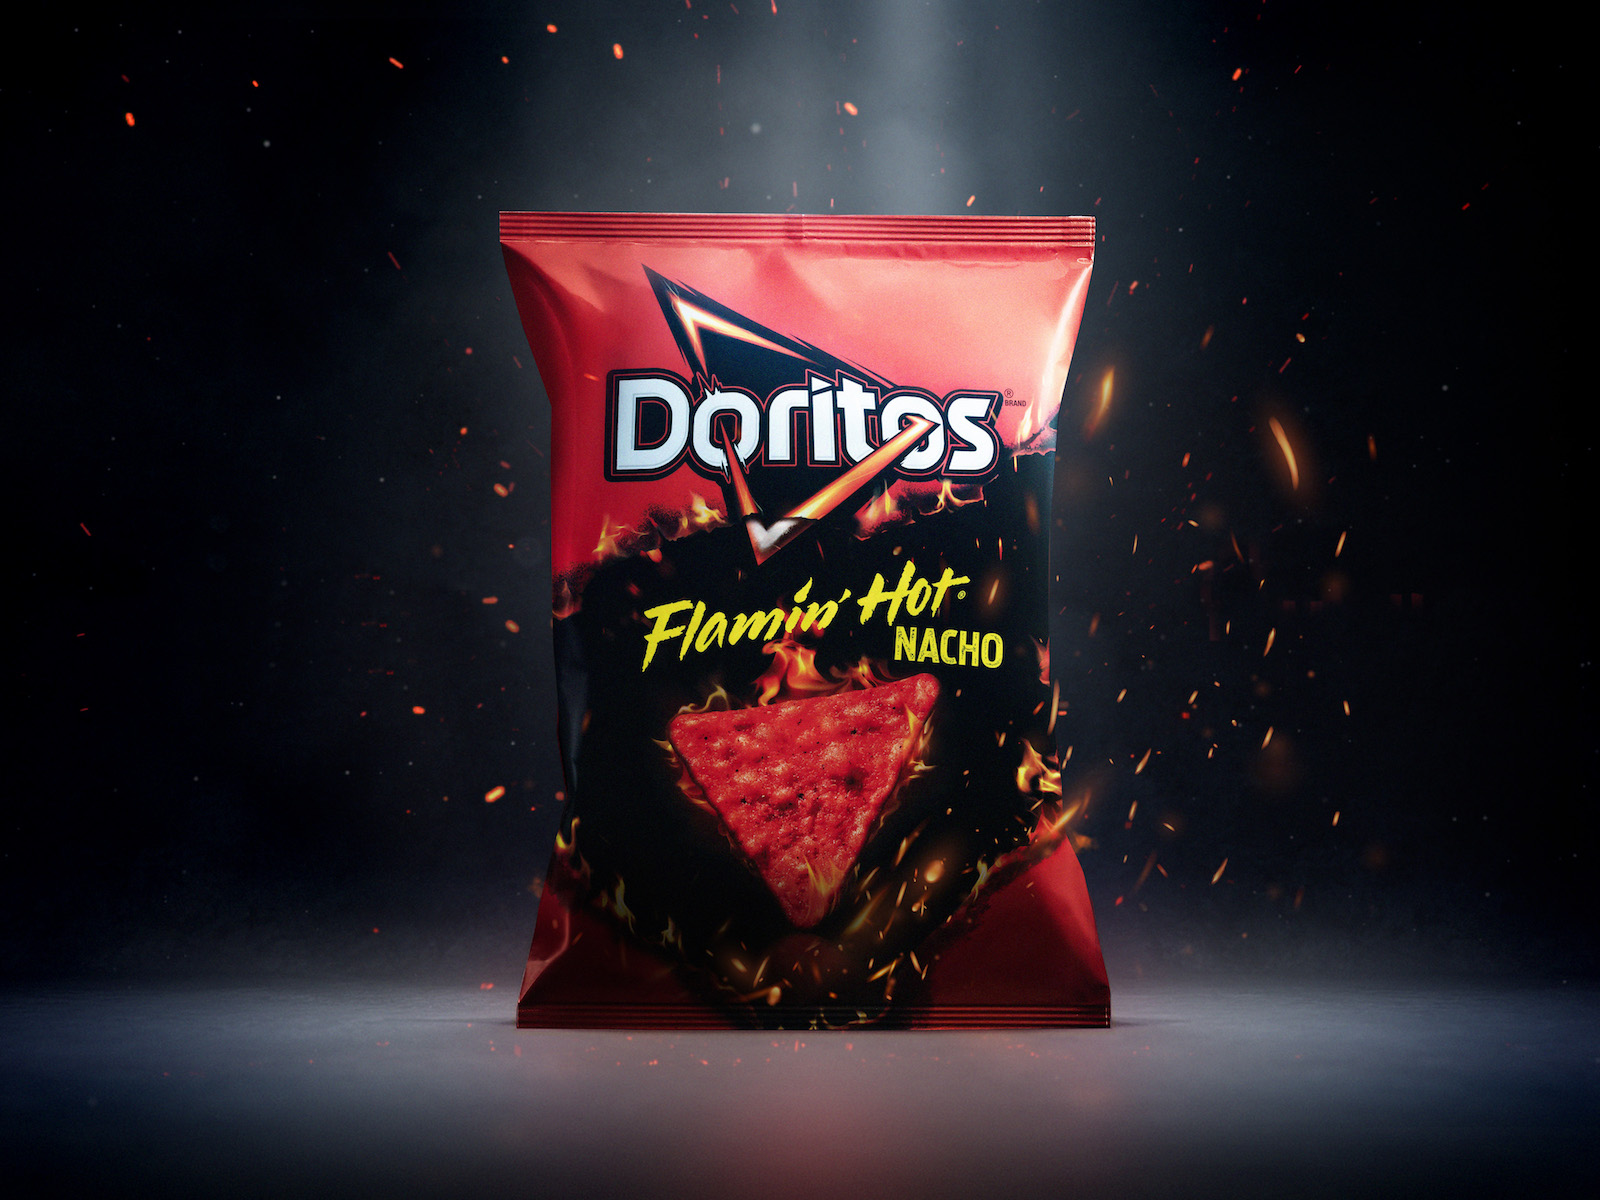 Doritos Unleashes Flamin' Hot Flavor on Its Nacho Chips